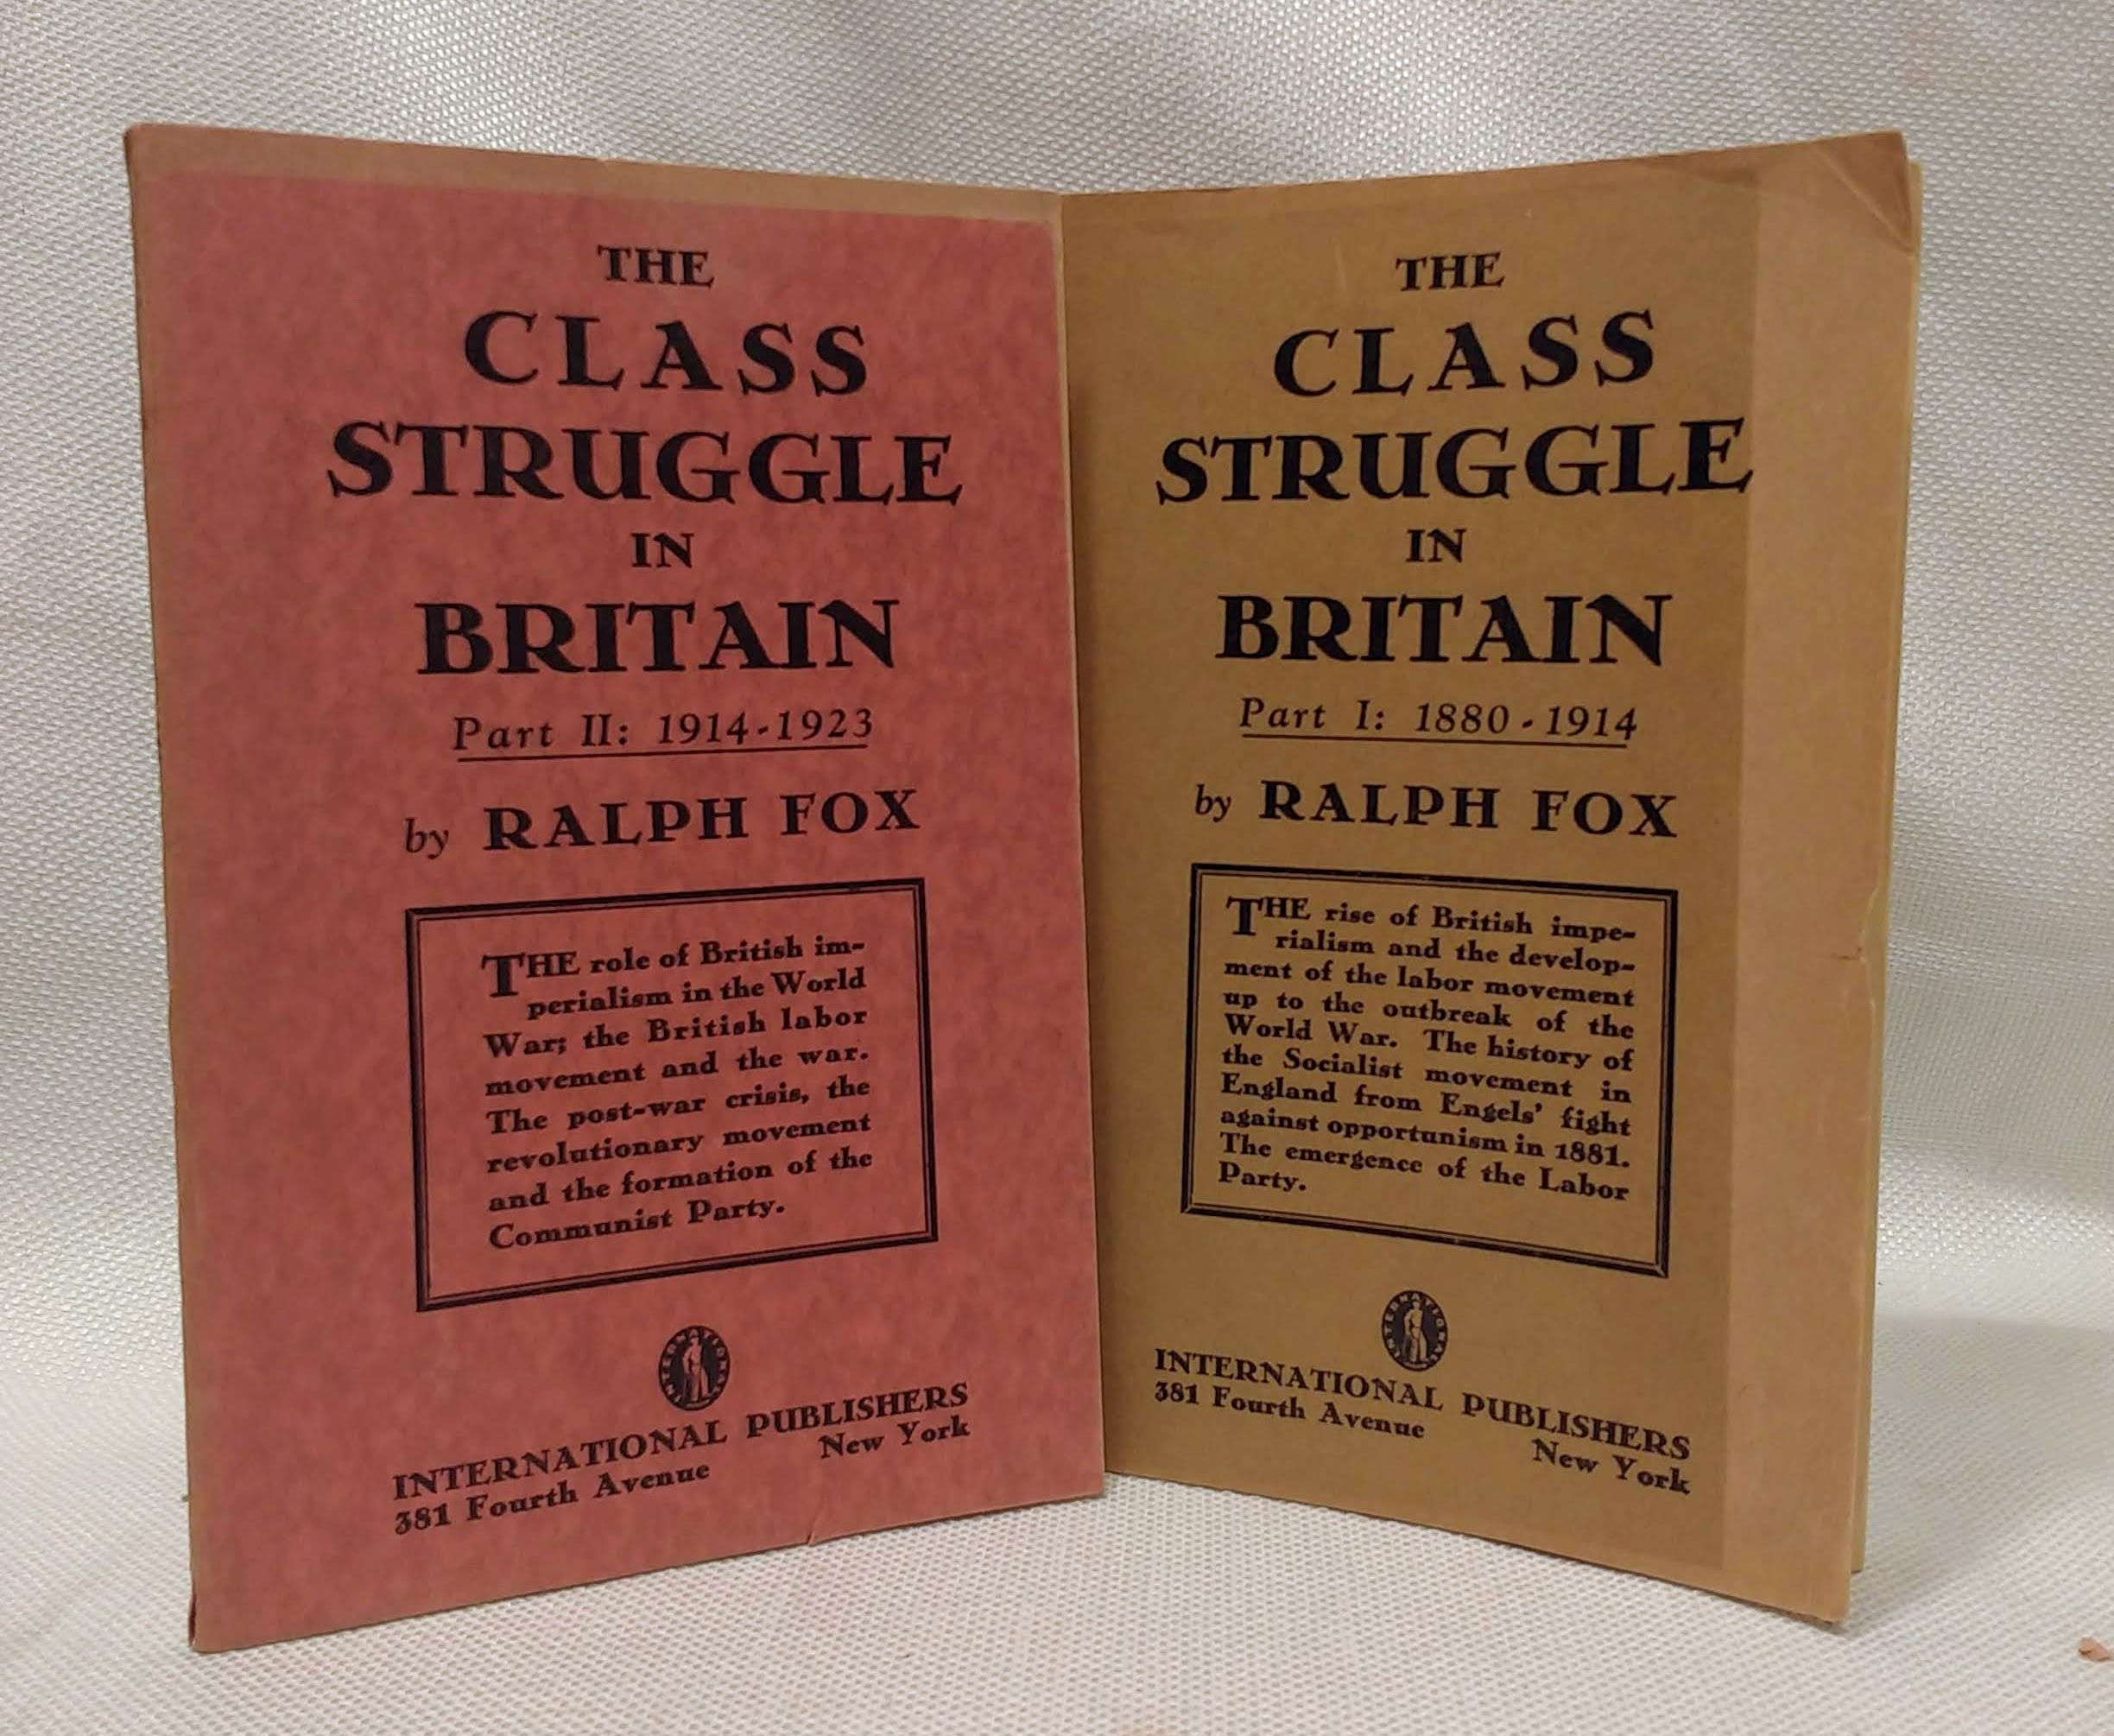 The Class Struggle in Britain in The Epoch of Imperialism, Part 1:1880-1914 and Part 2: 1914-1923 (2 volumes), Ralph Fox